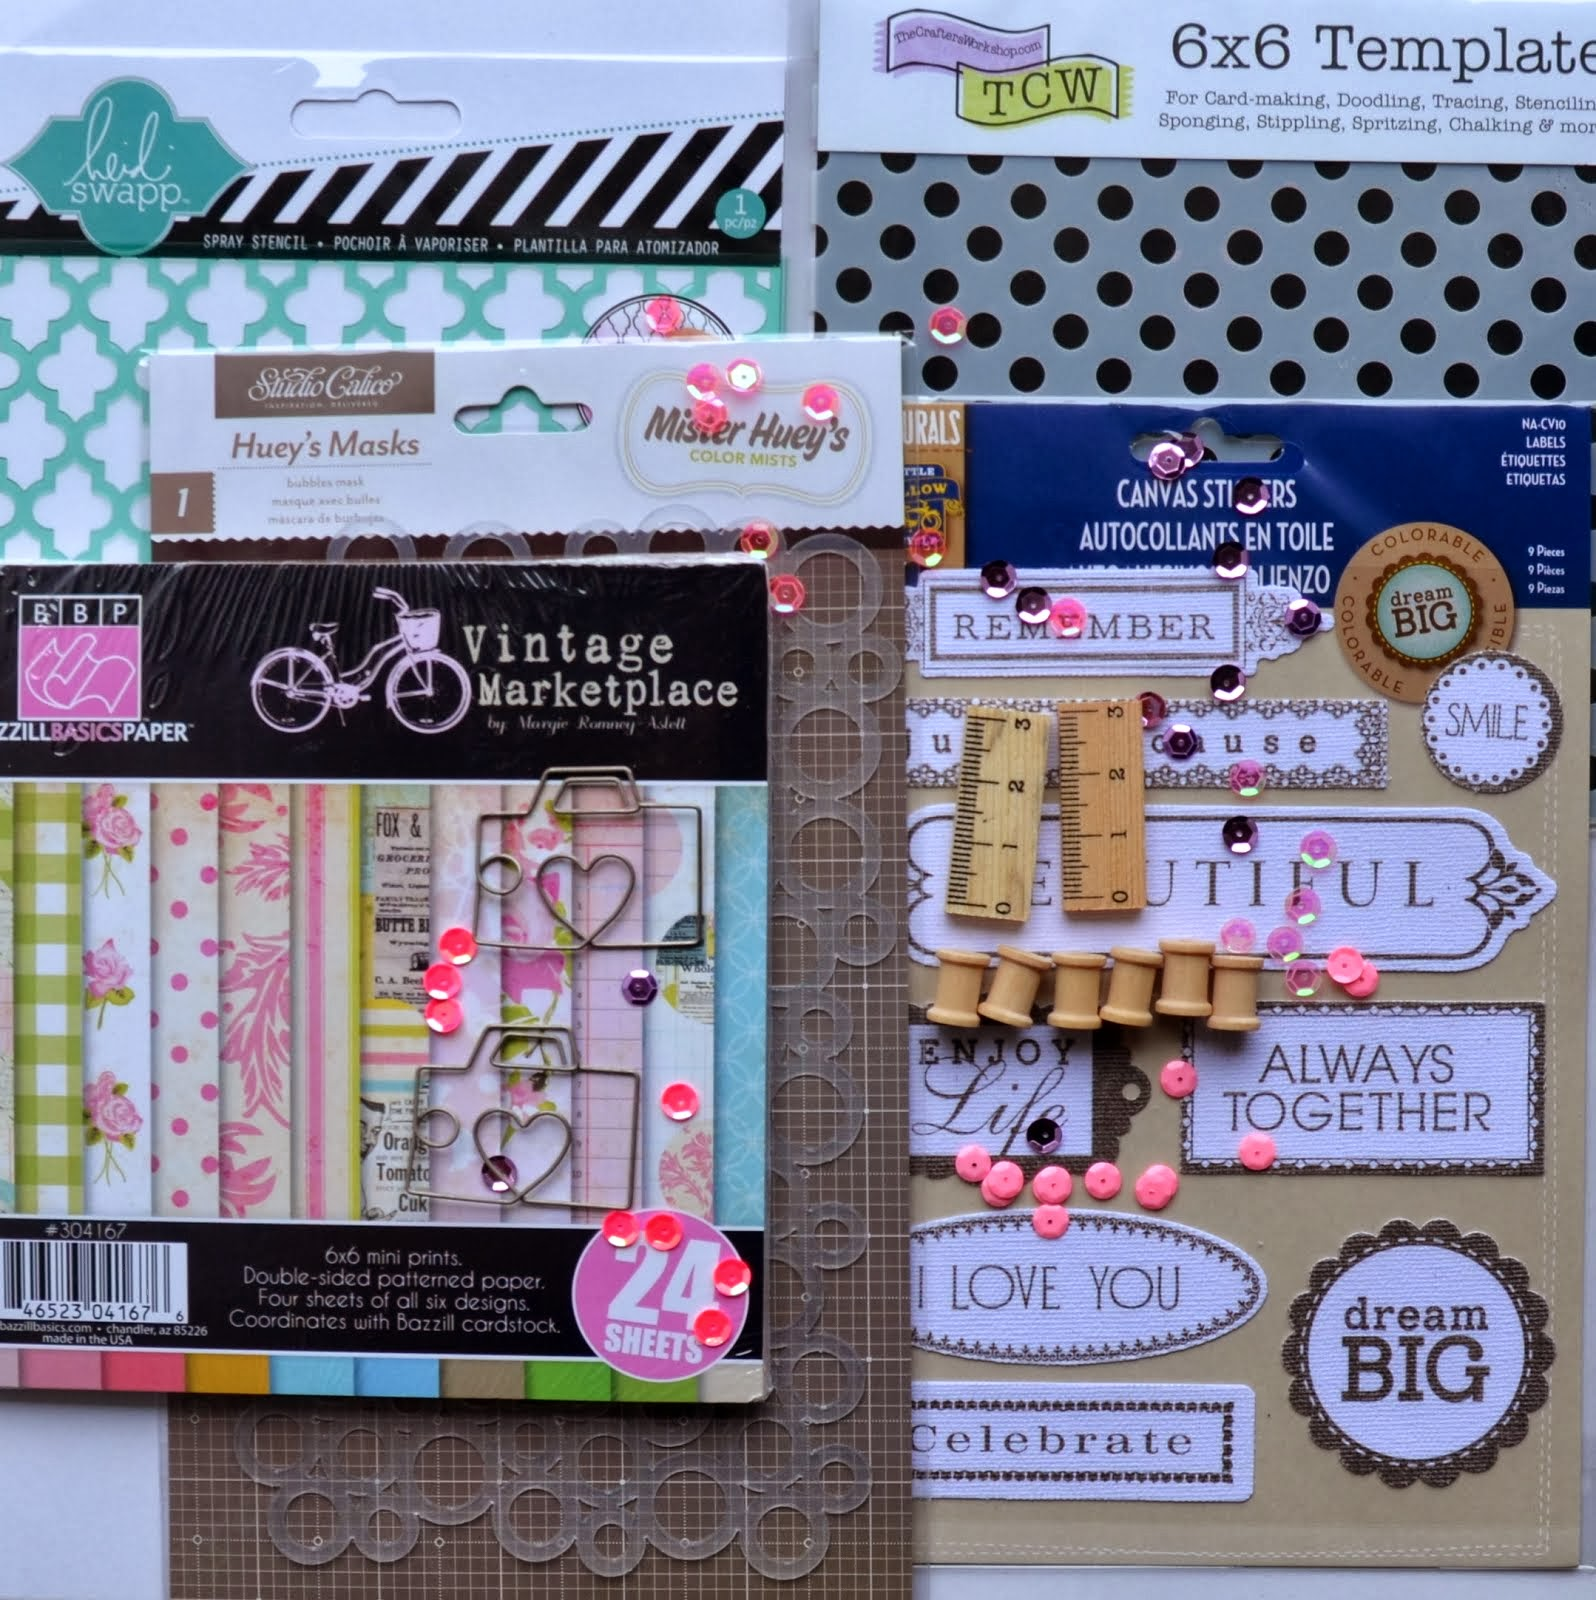 Scrap It Girl November challenge - win this!